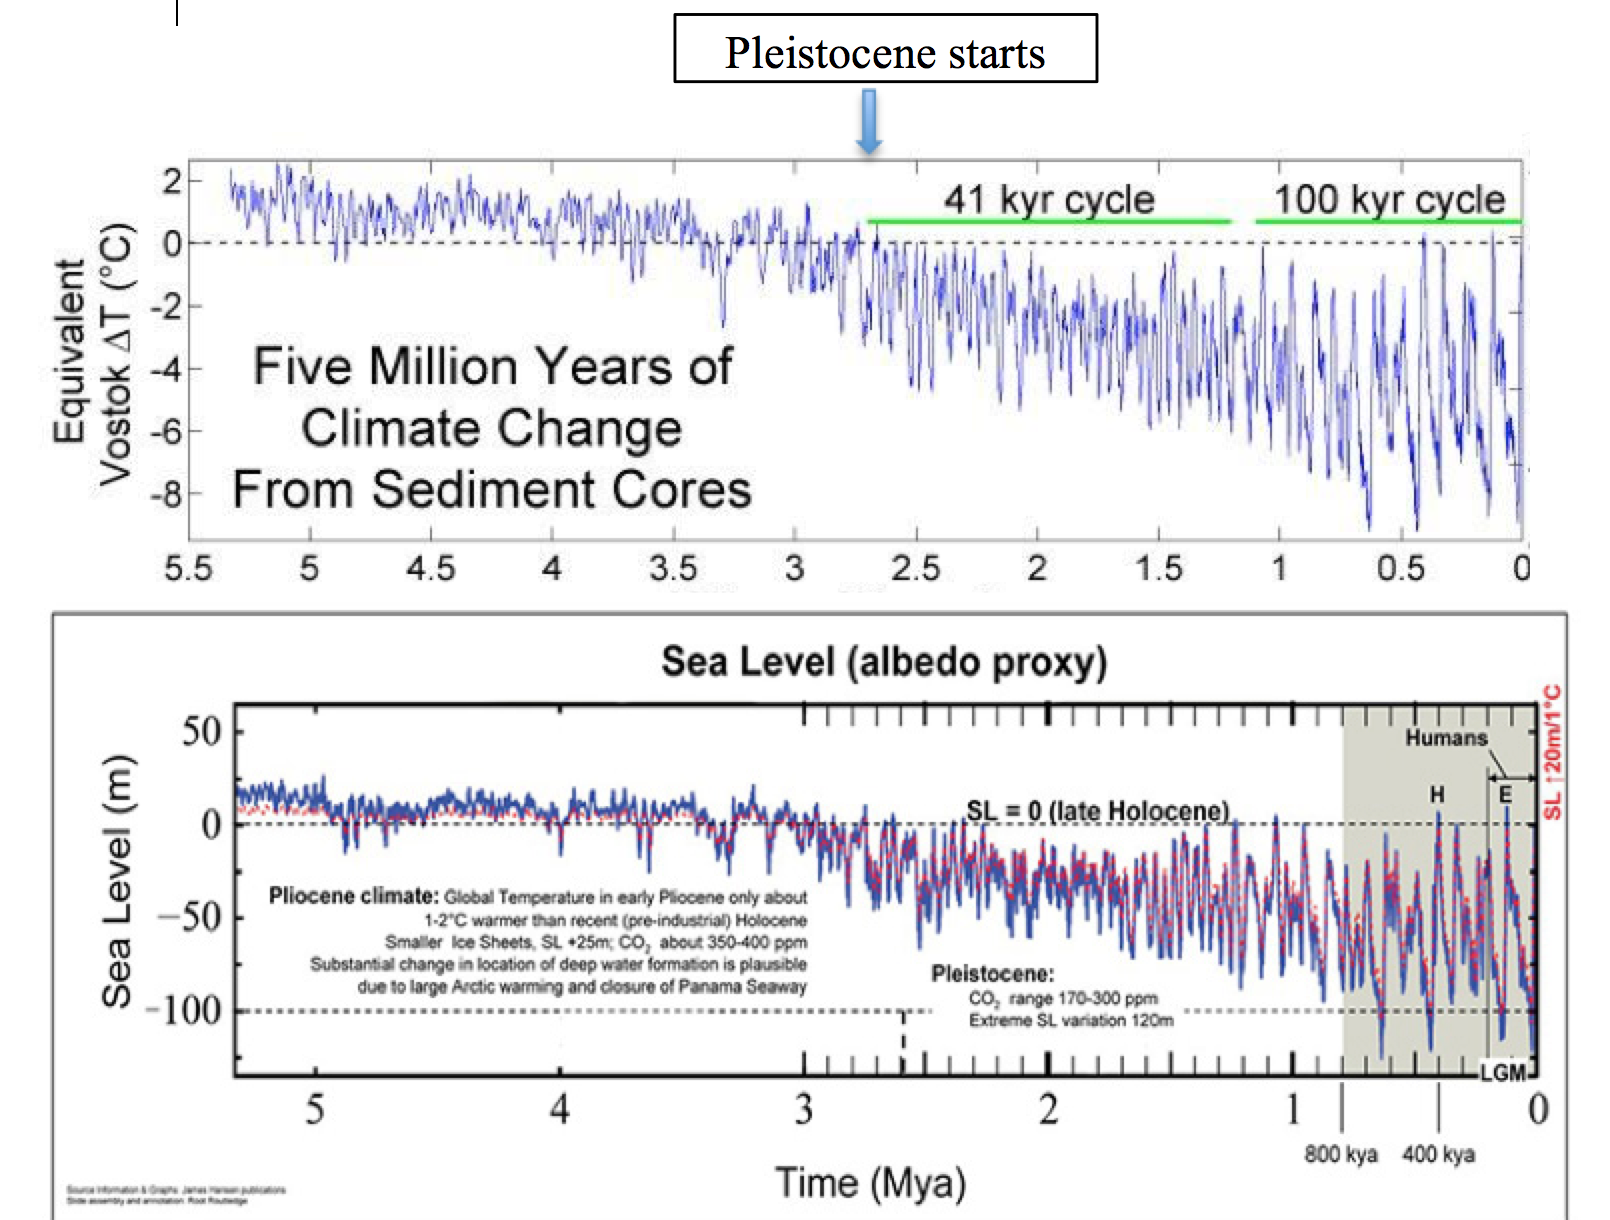 Figure 2A. Temperatures and Oxygen record from the Vostok, Antarctica, ice core. The horizontal dashed line represents approximately present day levels. ( https://en.wikipedia.org/wiki/Geologic_temperature_record ).  Figure 2B. Sea Level over the past 5 millions years ( https://www.e-education.psu.edu/earth107/node/901 ).